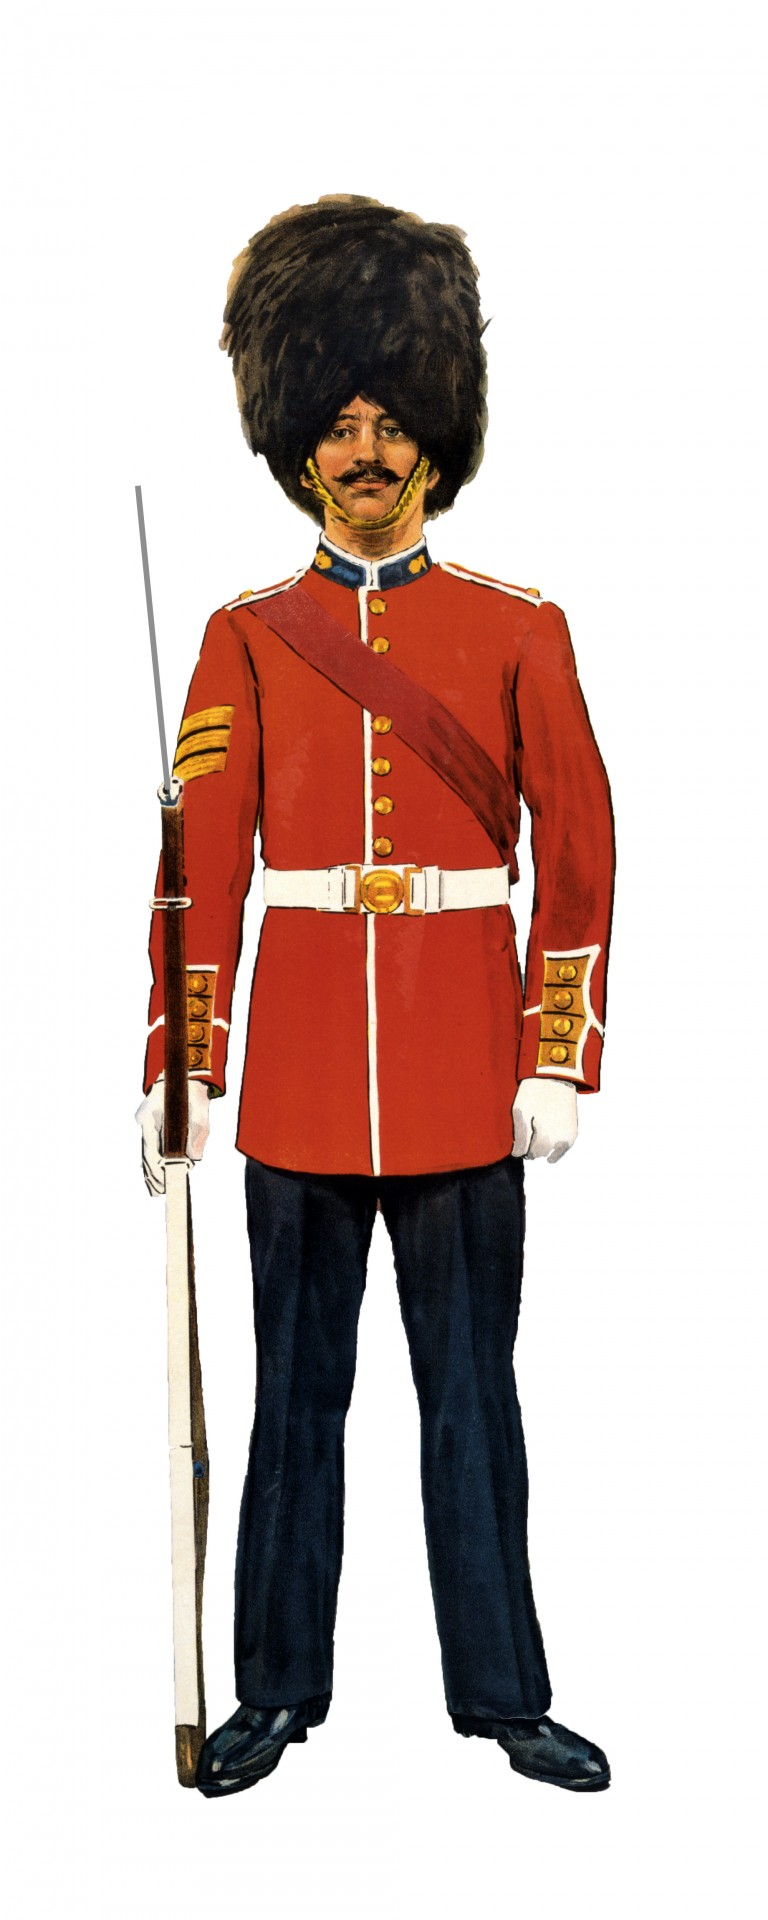 Military clipart public domain. Soldier grenadier guard free